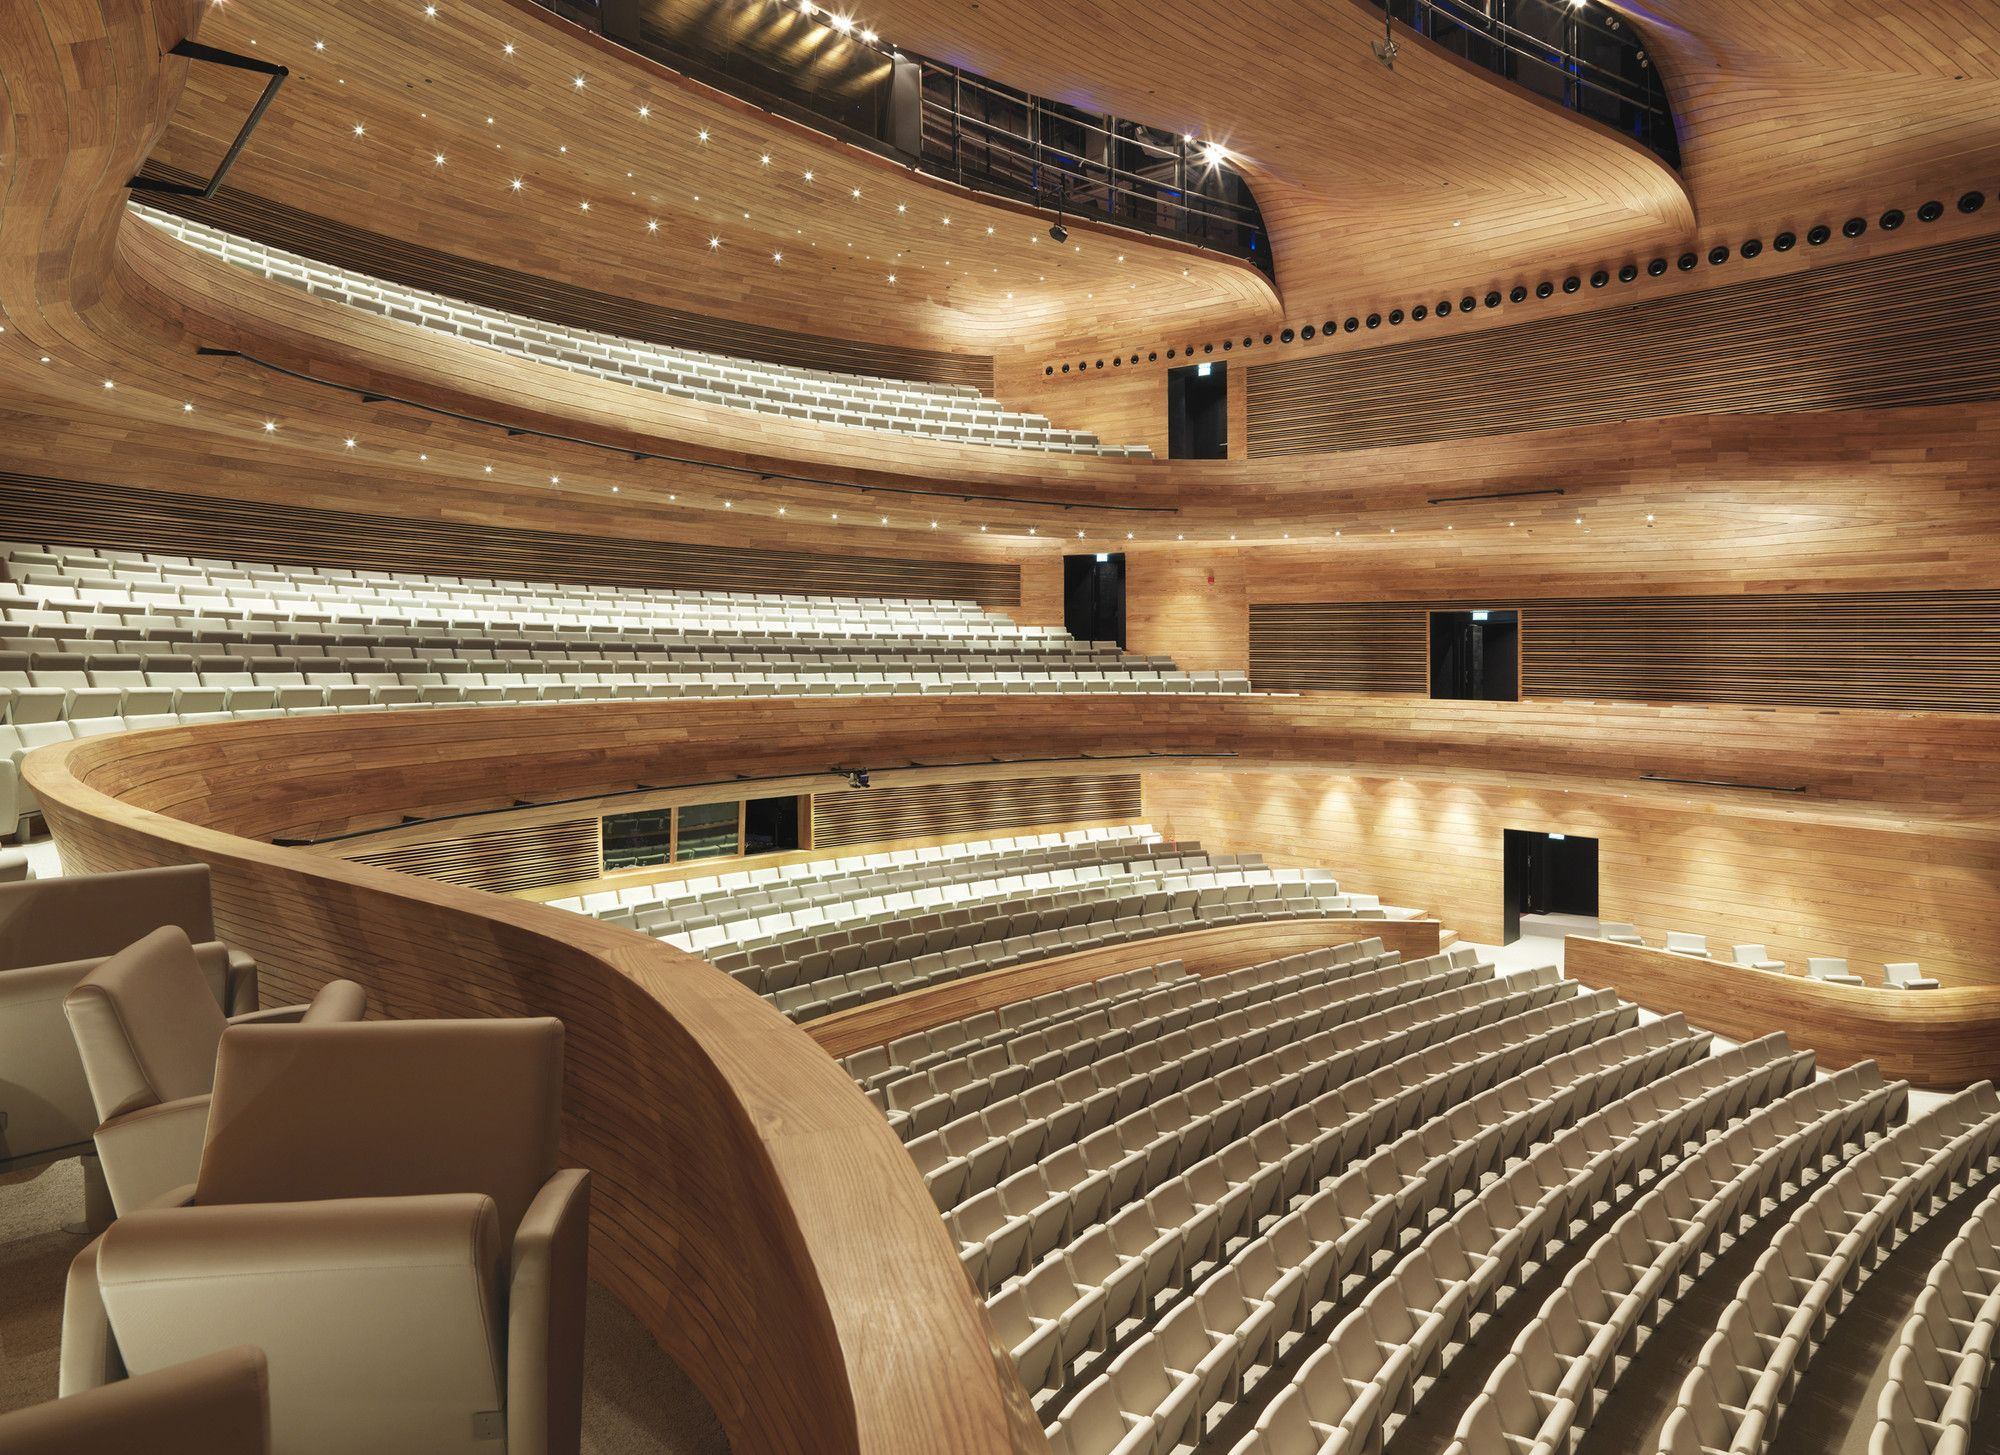 Planery Hall Image 2 of 8 from gallery of Bahrain National Theatre Architecture